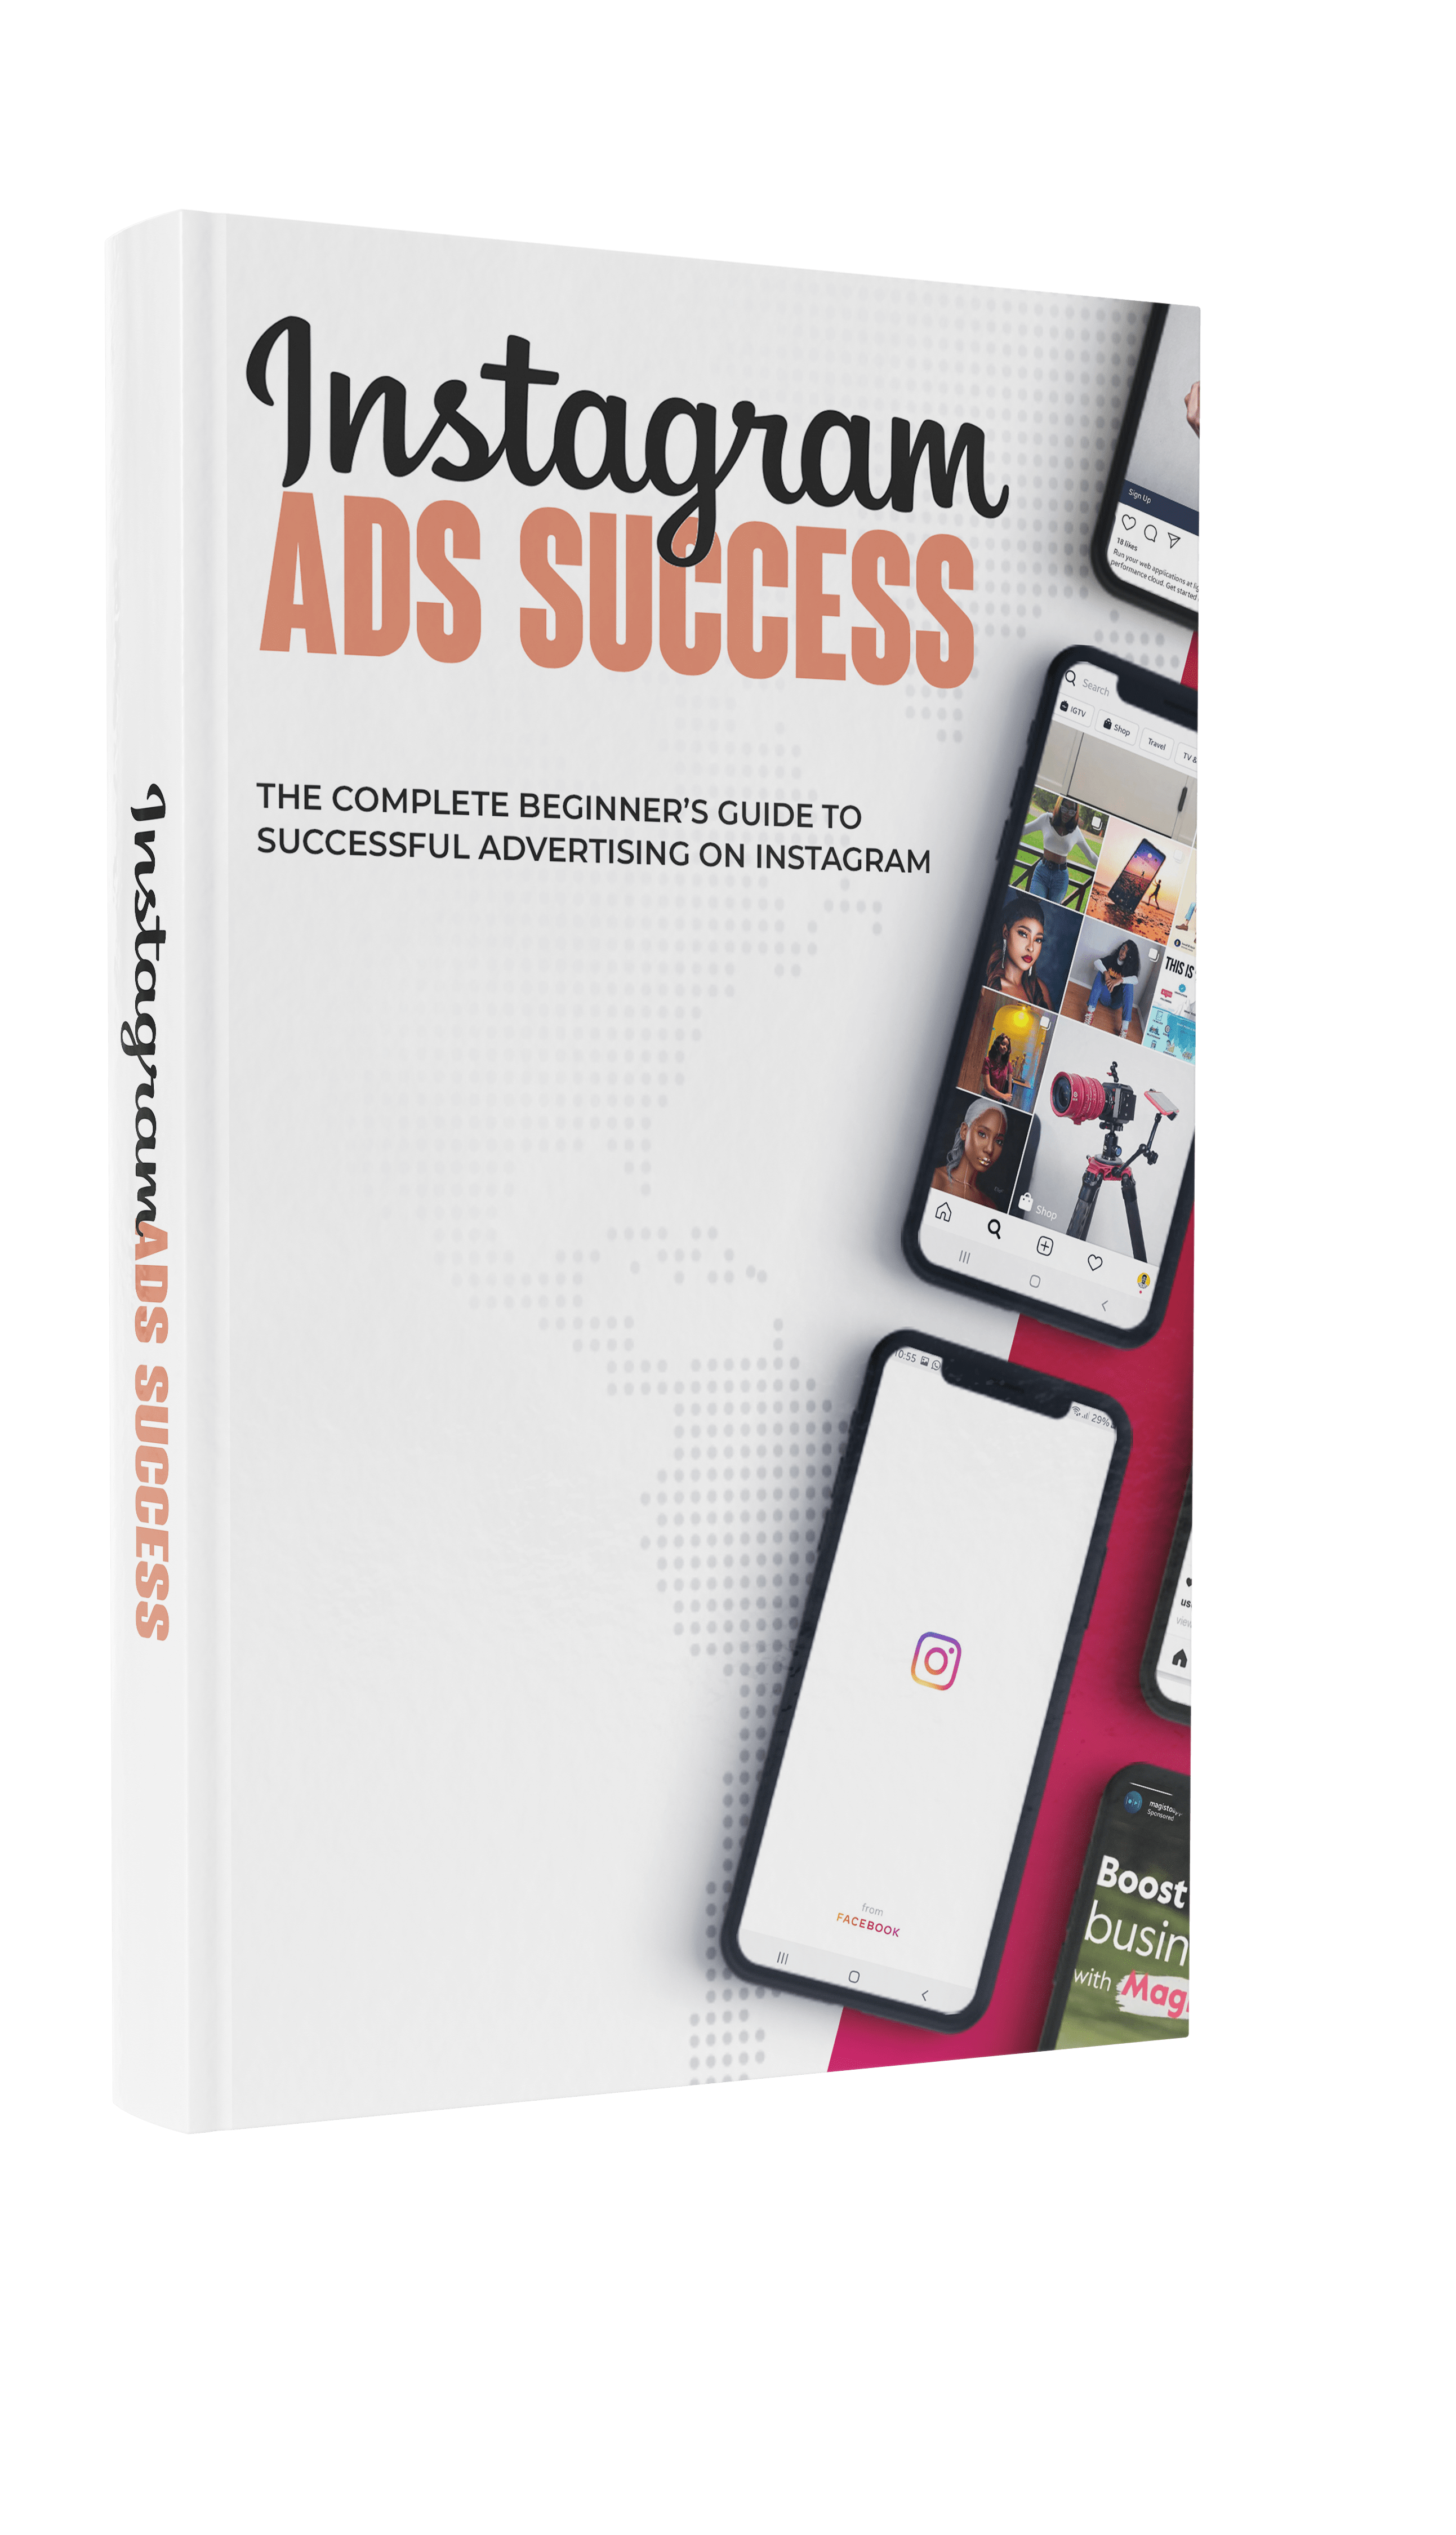 IG Ads Success Ebook Cover